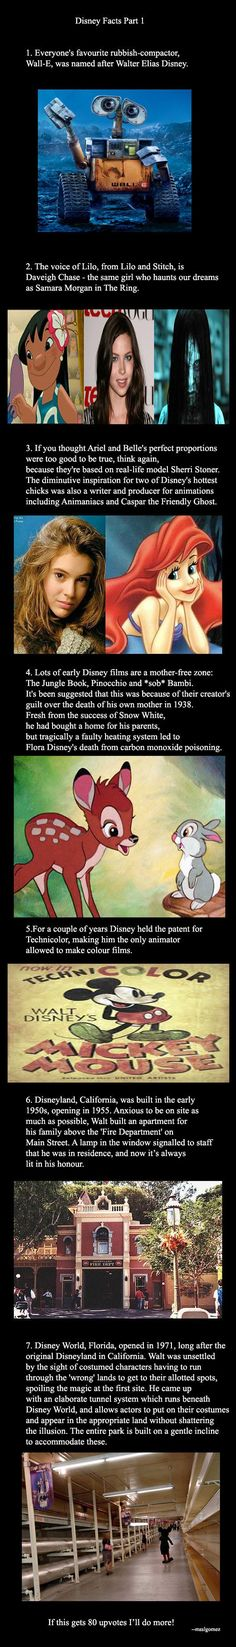 Disney Facts Part 1 // mindblowing this is